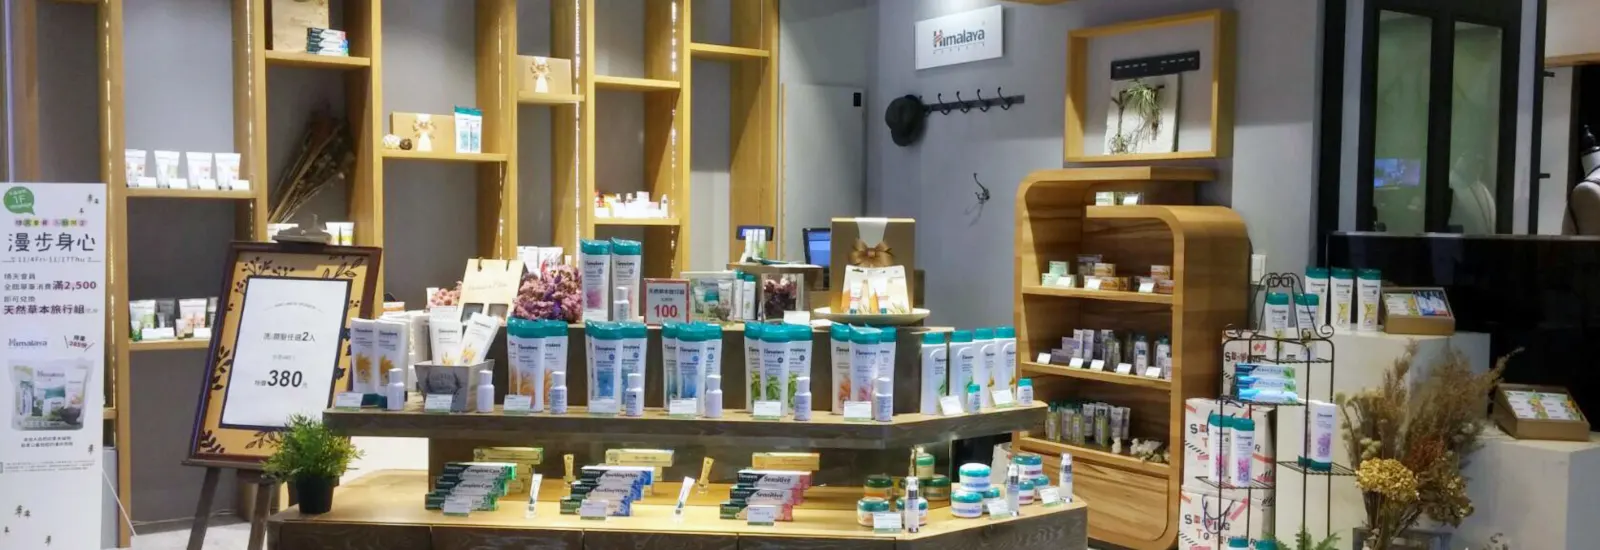 Products in store - The Himalaya Drug Company